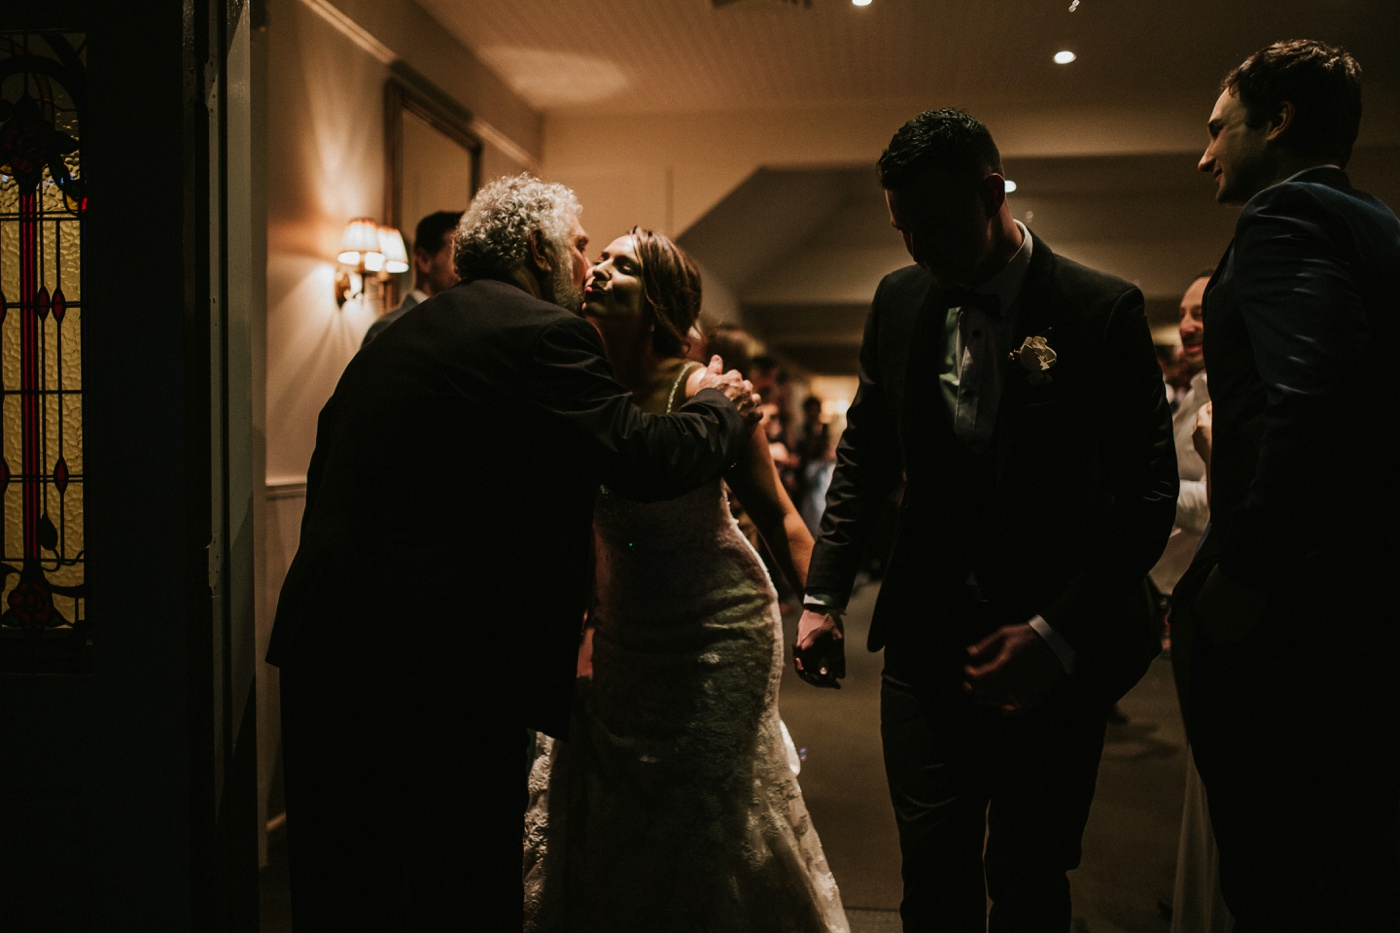 wesleybianca_dandenongs-sherbrooke-poets-lane-wedding_melbourne-quirky-fun-candid-wedding-photography_93